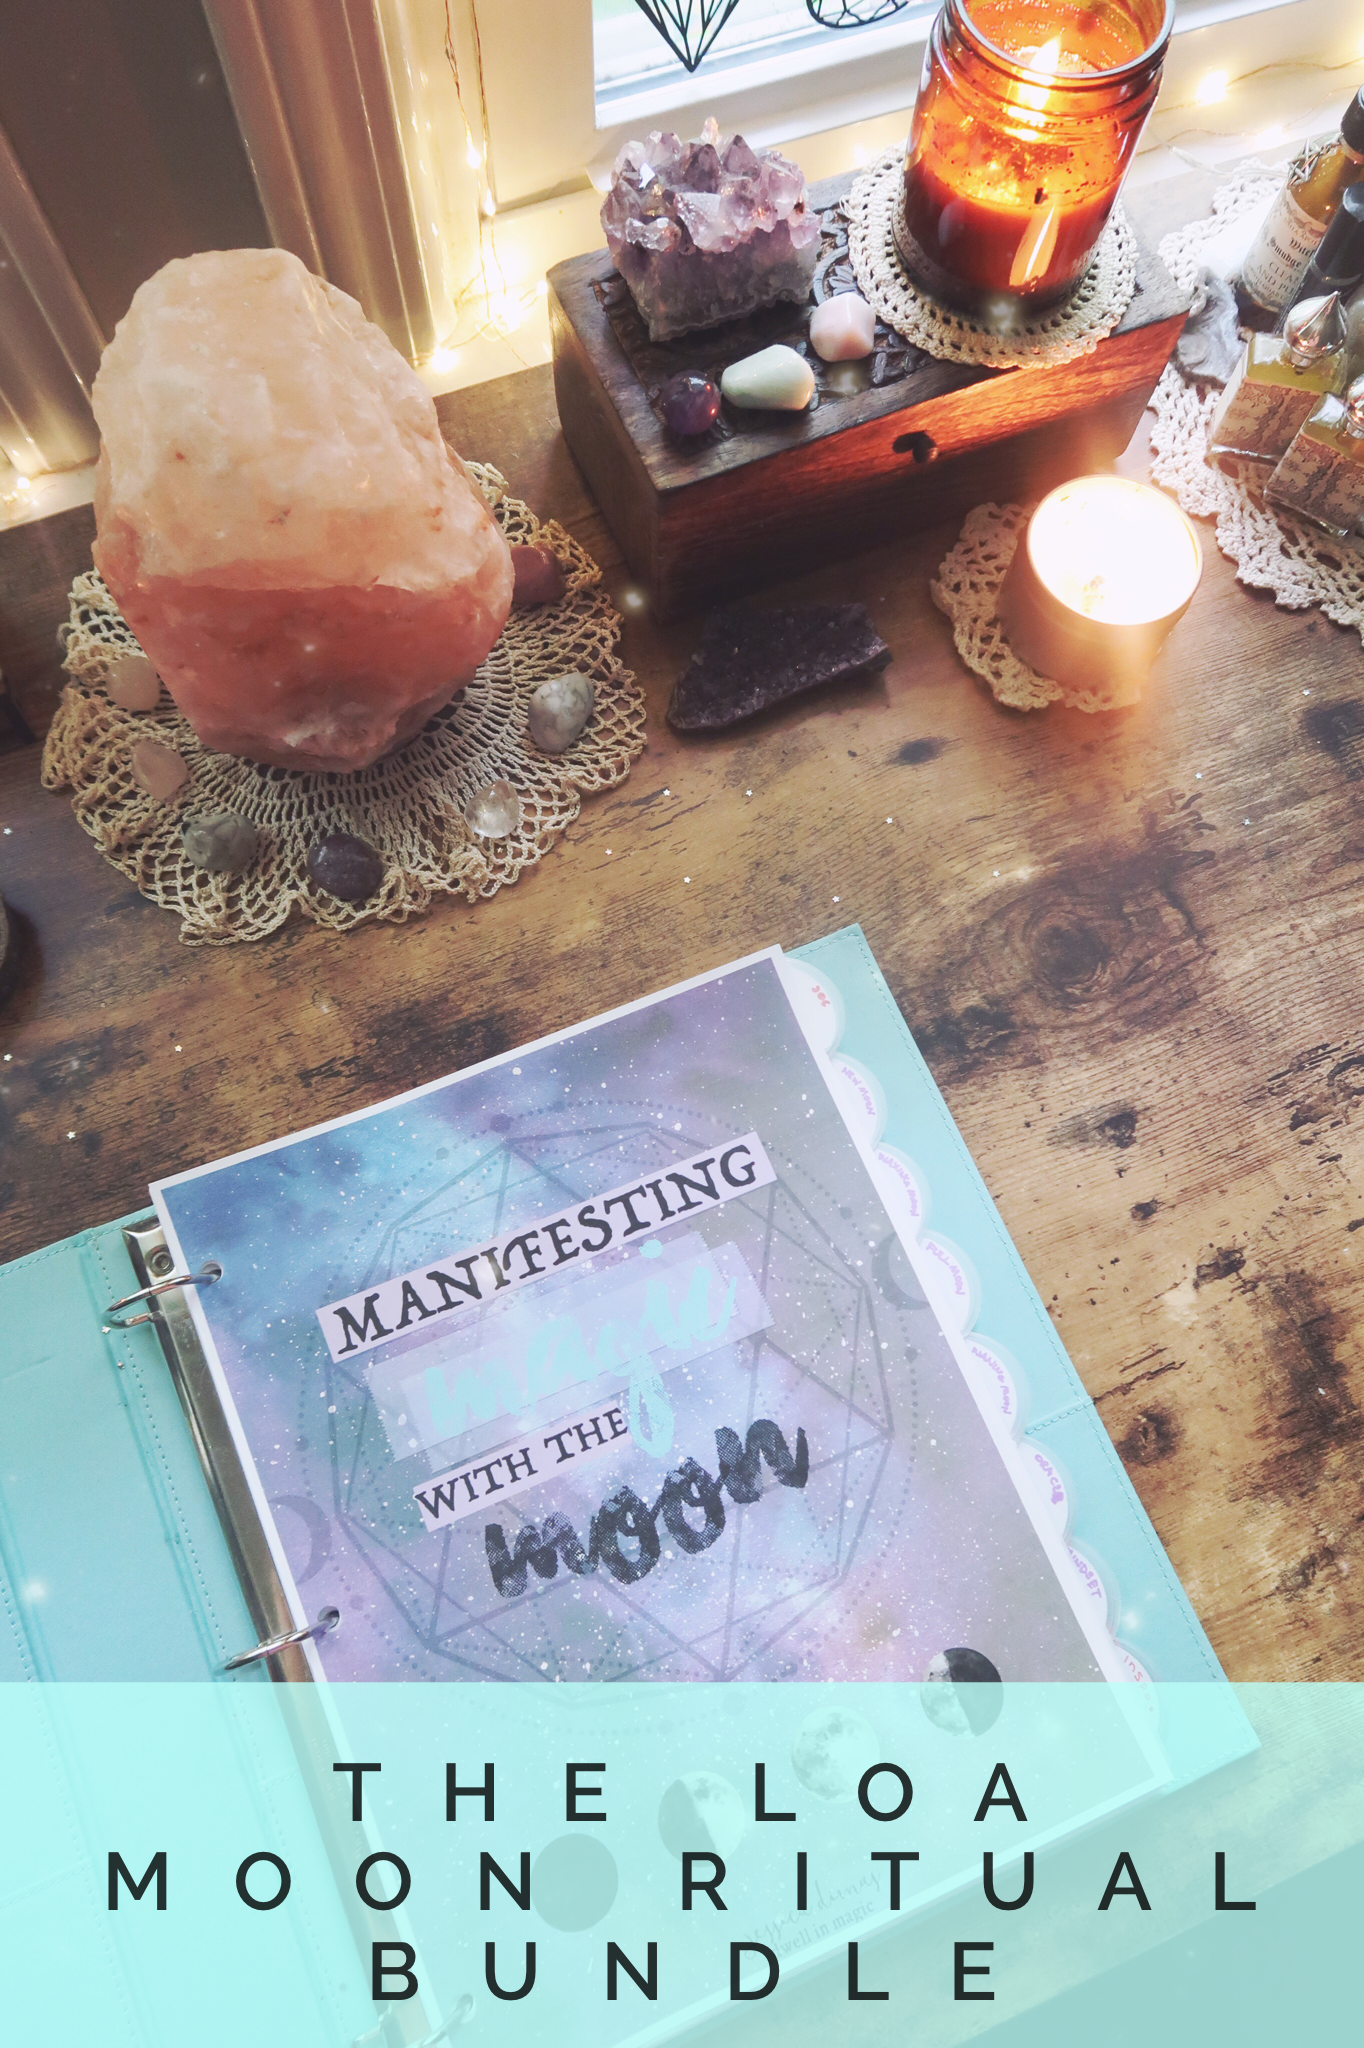 Moon ritual Journal